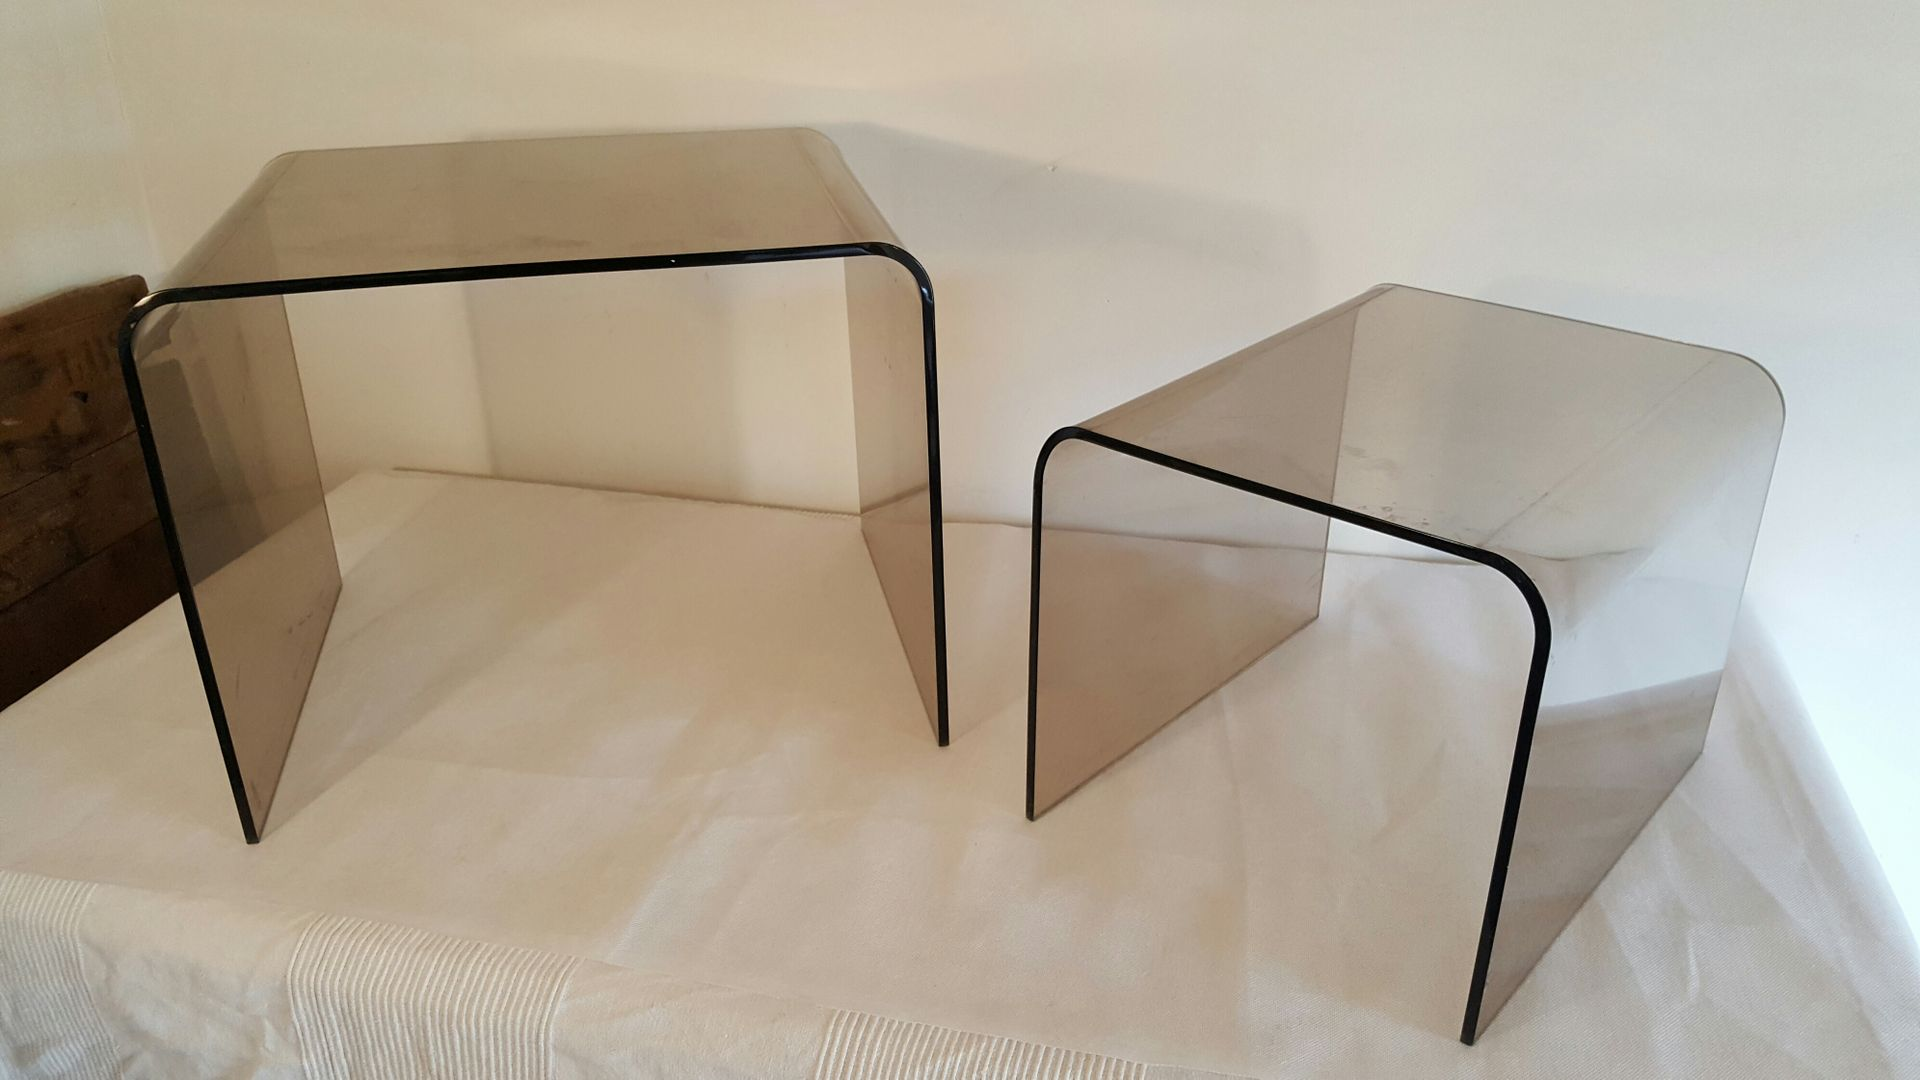 tables gigognes en plexiglas fum 1970s en vente sur pamono. Black Bedroom Furniture Sets. Home Design Ideas